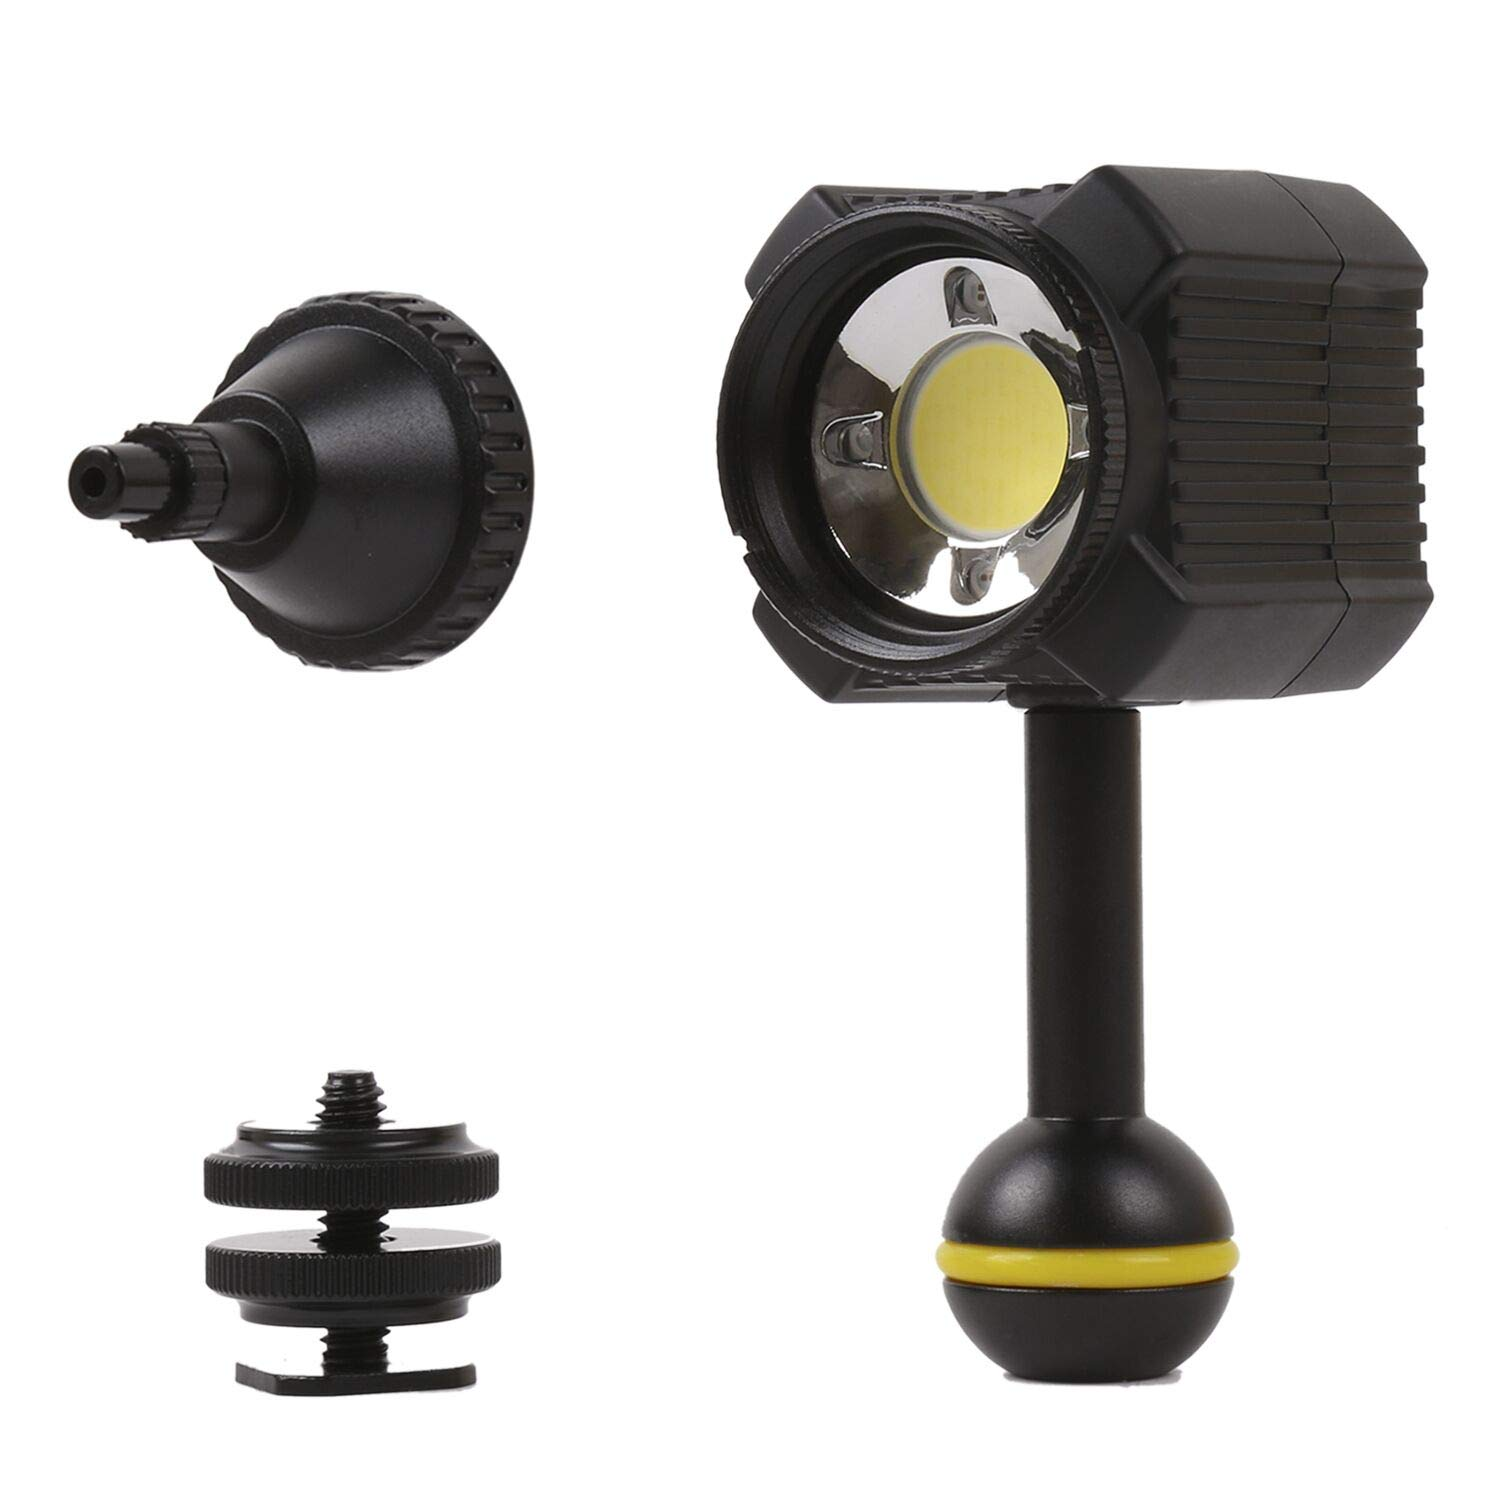 Orsda Diving Light High Power Mini Waterproof led Light Scuba Diving Lights Fill-in Light for Waterproof housing Underwater Photographic Lighting System